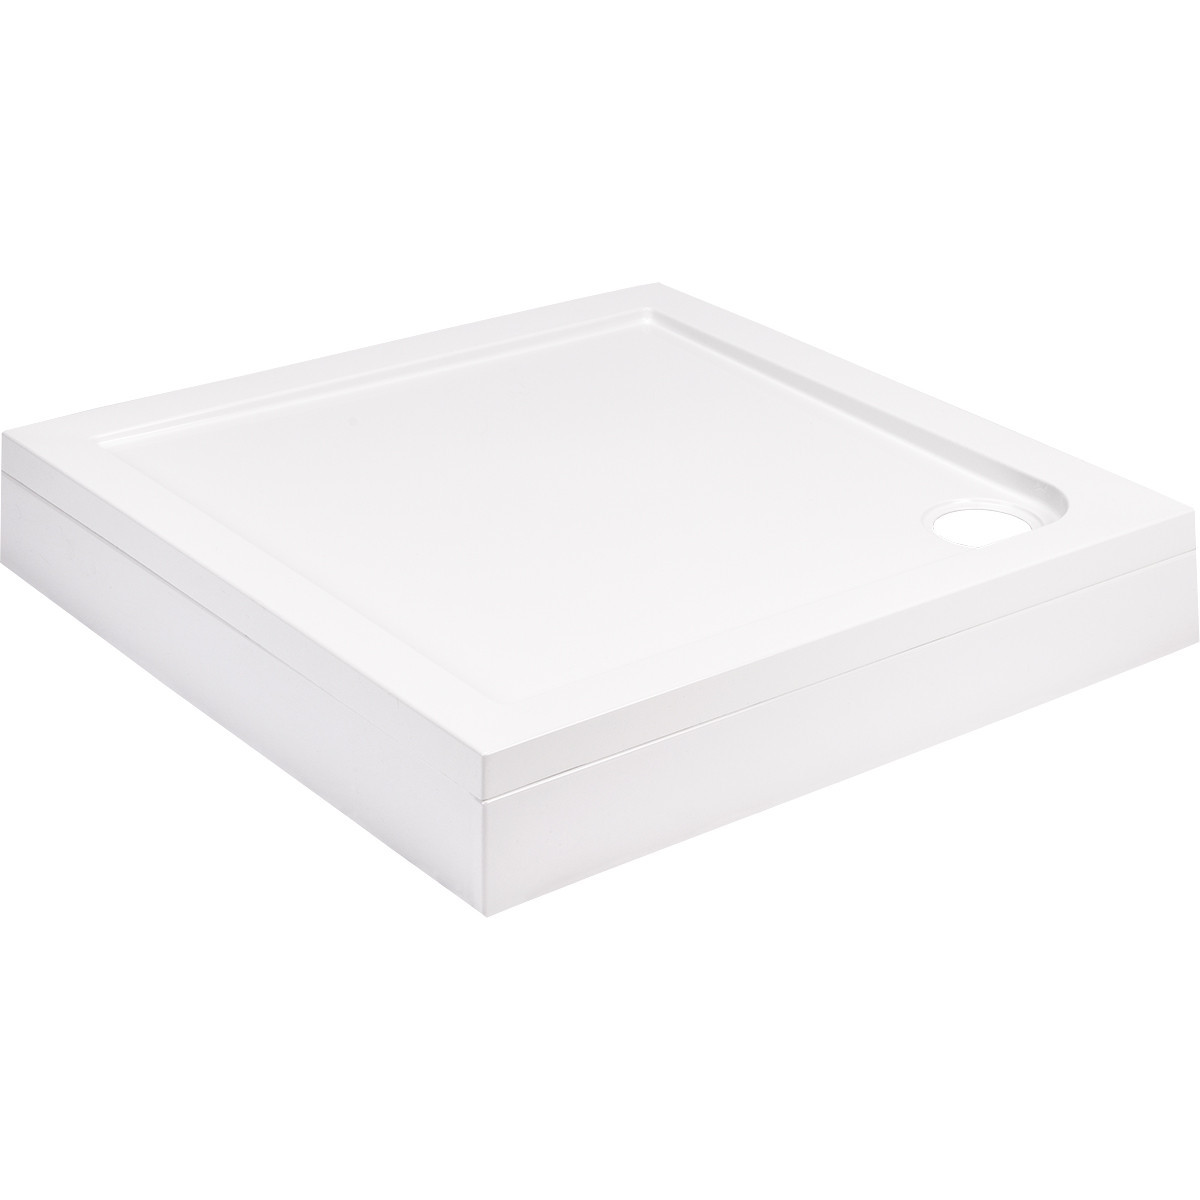 40mm Pearlstone 900 x 900 Square Shower Tray & Plinth